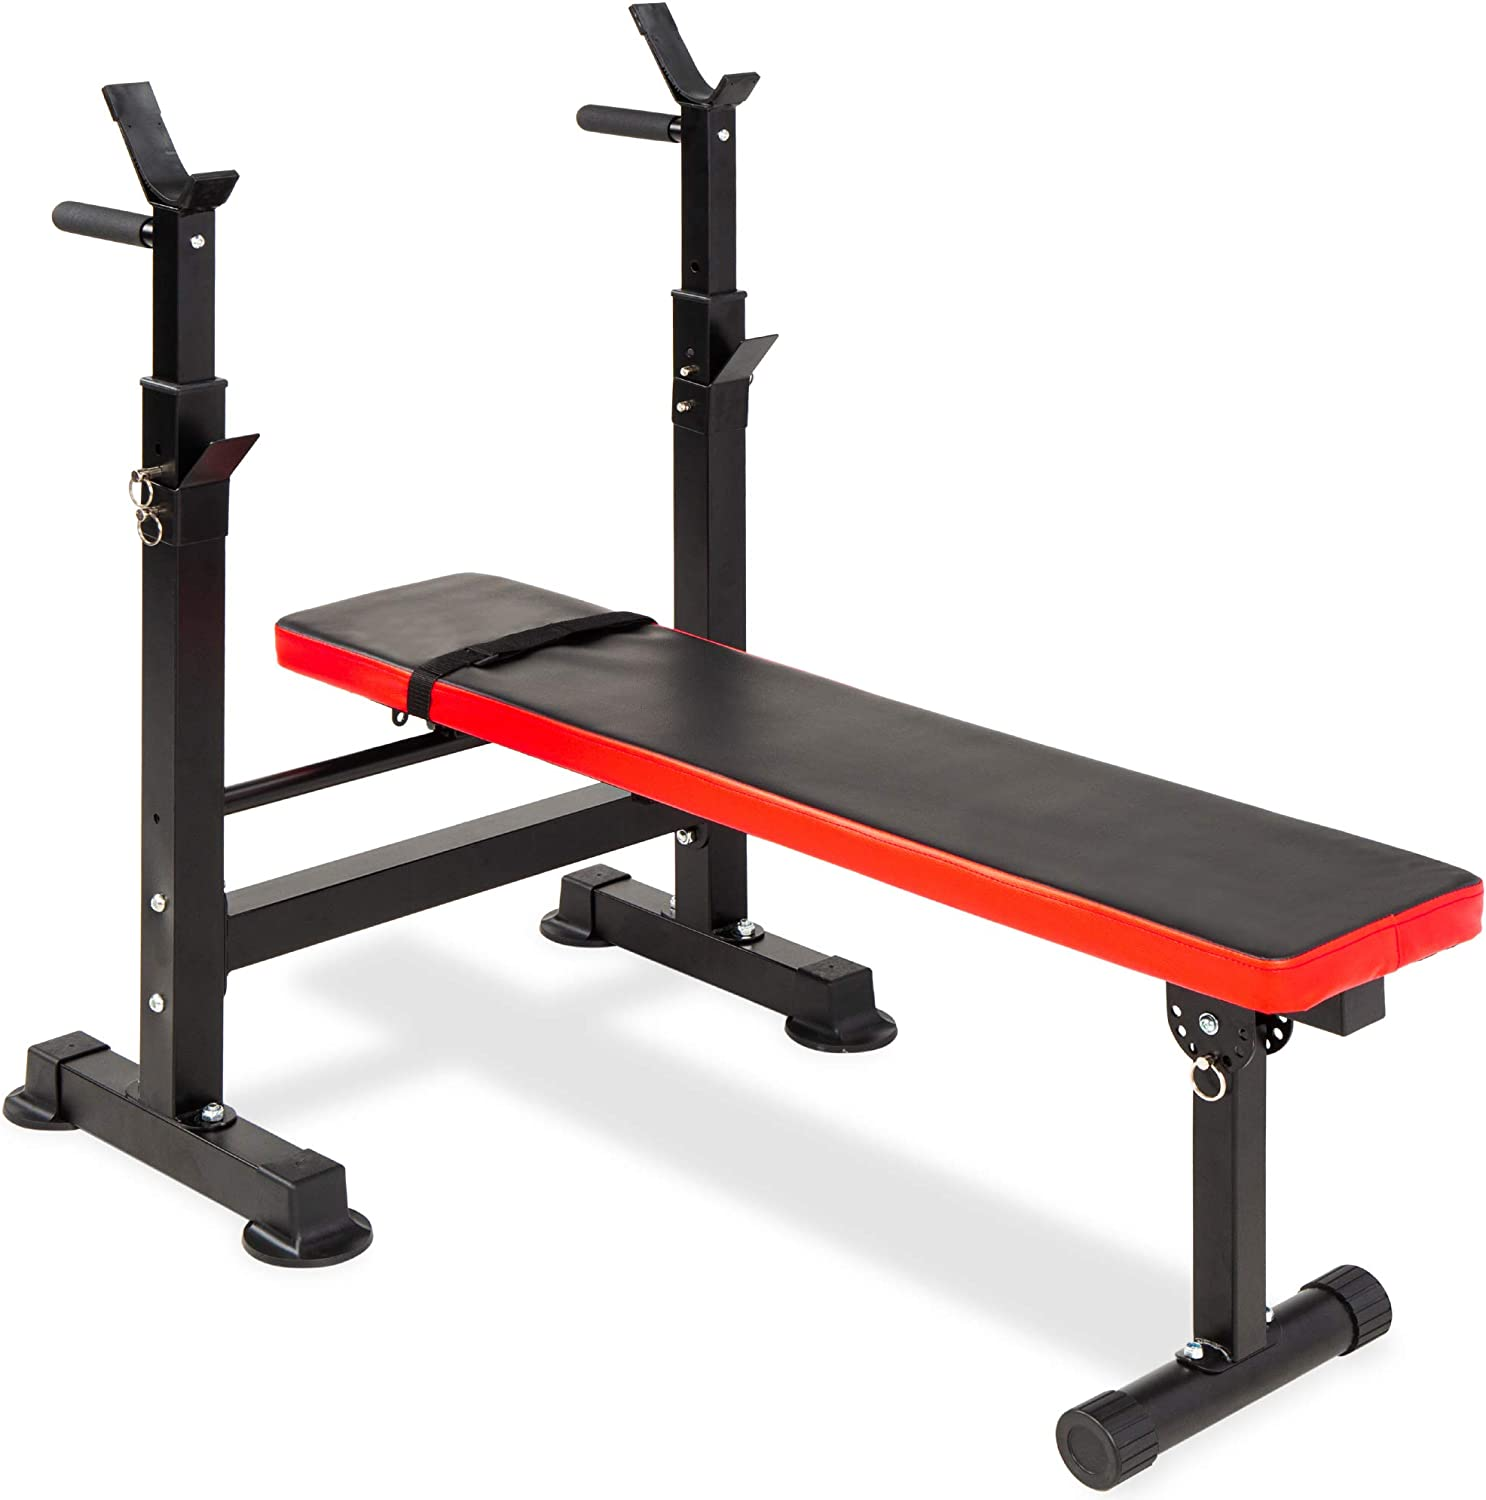 New Adjustable Folding Fitness Barbell Rack and Weight Bench Rack Set Fitness Barbell Dumbbell Workout for Home Gym Strength Training,Full-Body Workout